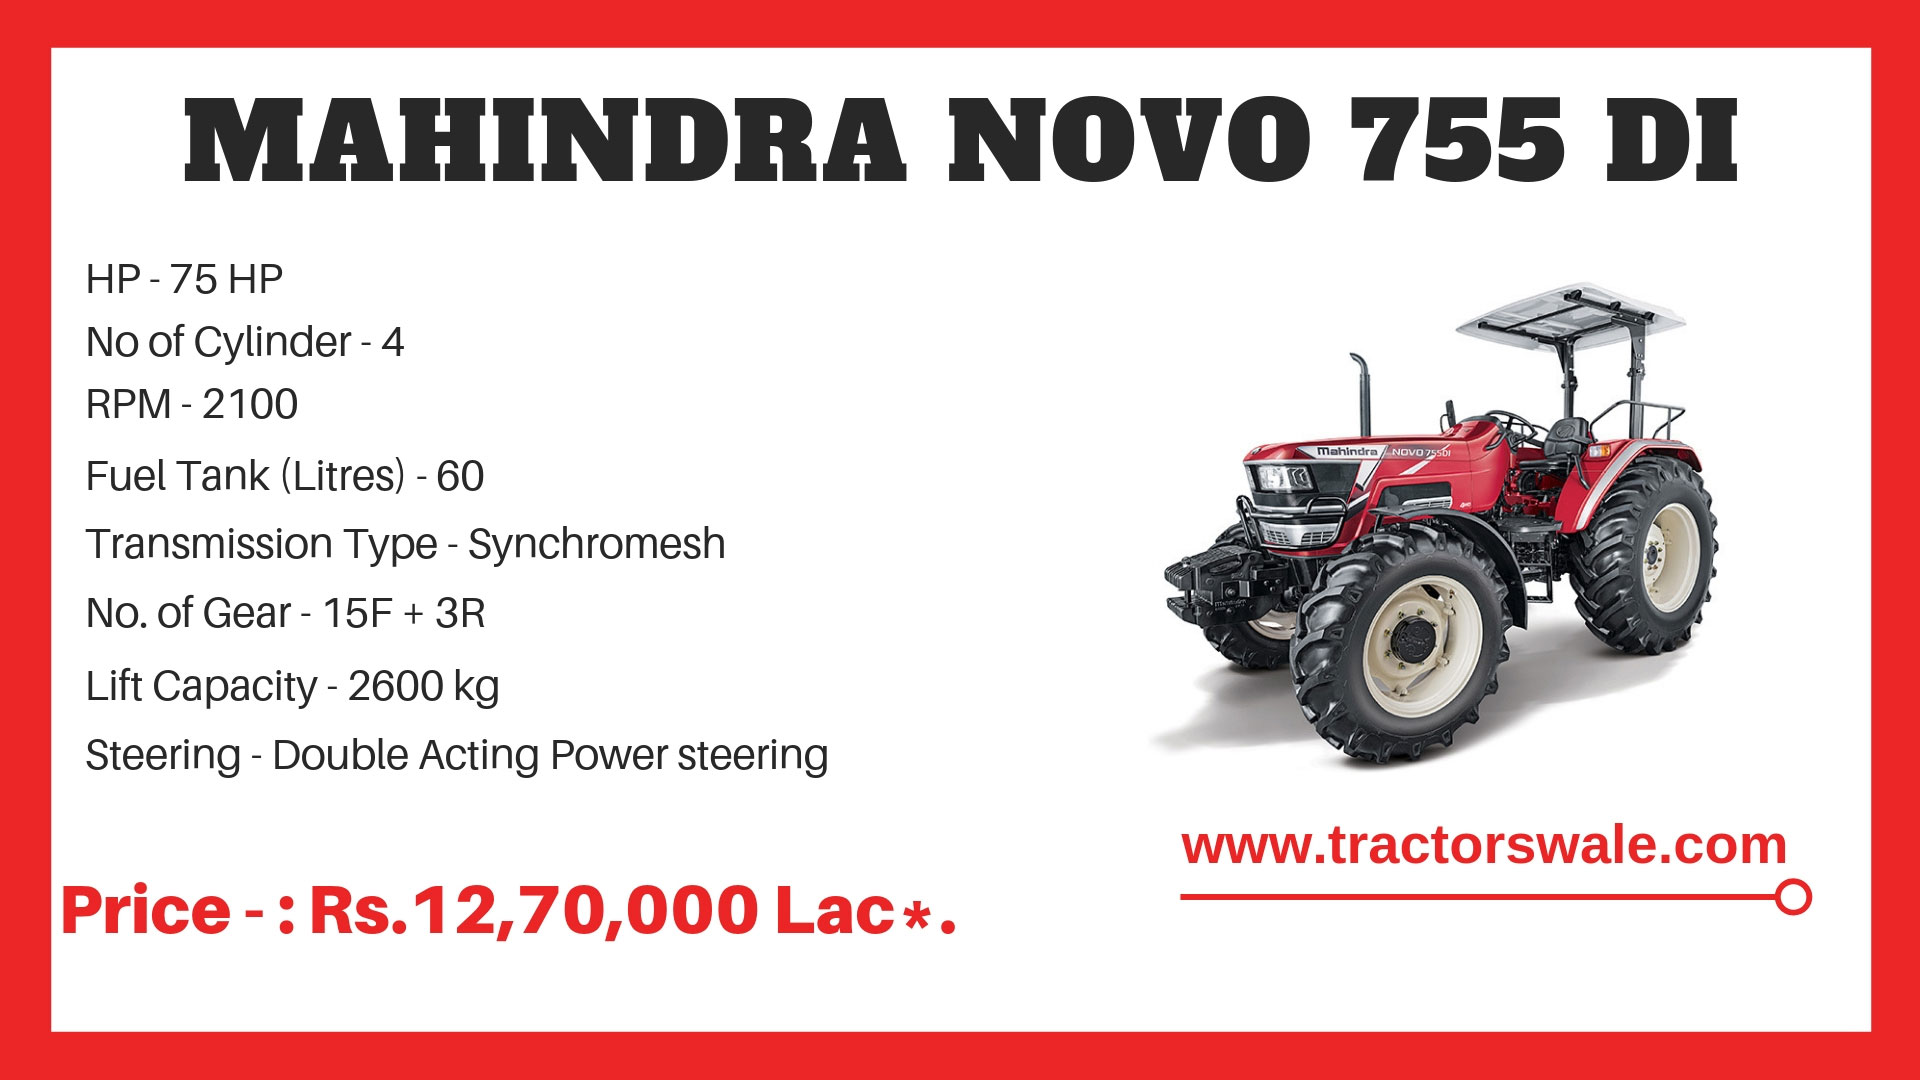 Mahindra-Novo-755-DI-Tractor-specifications-2019